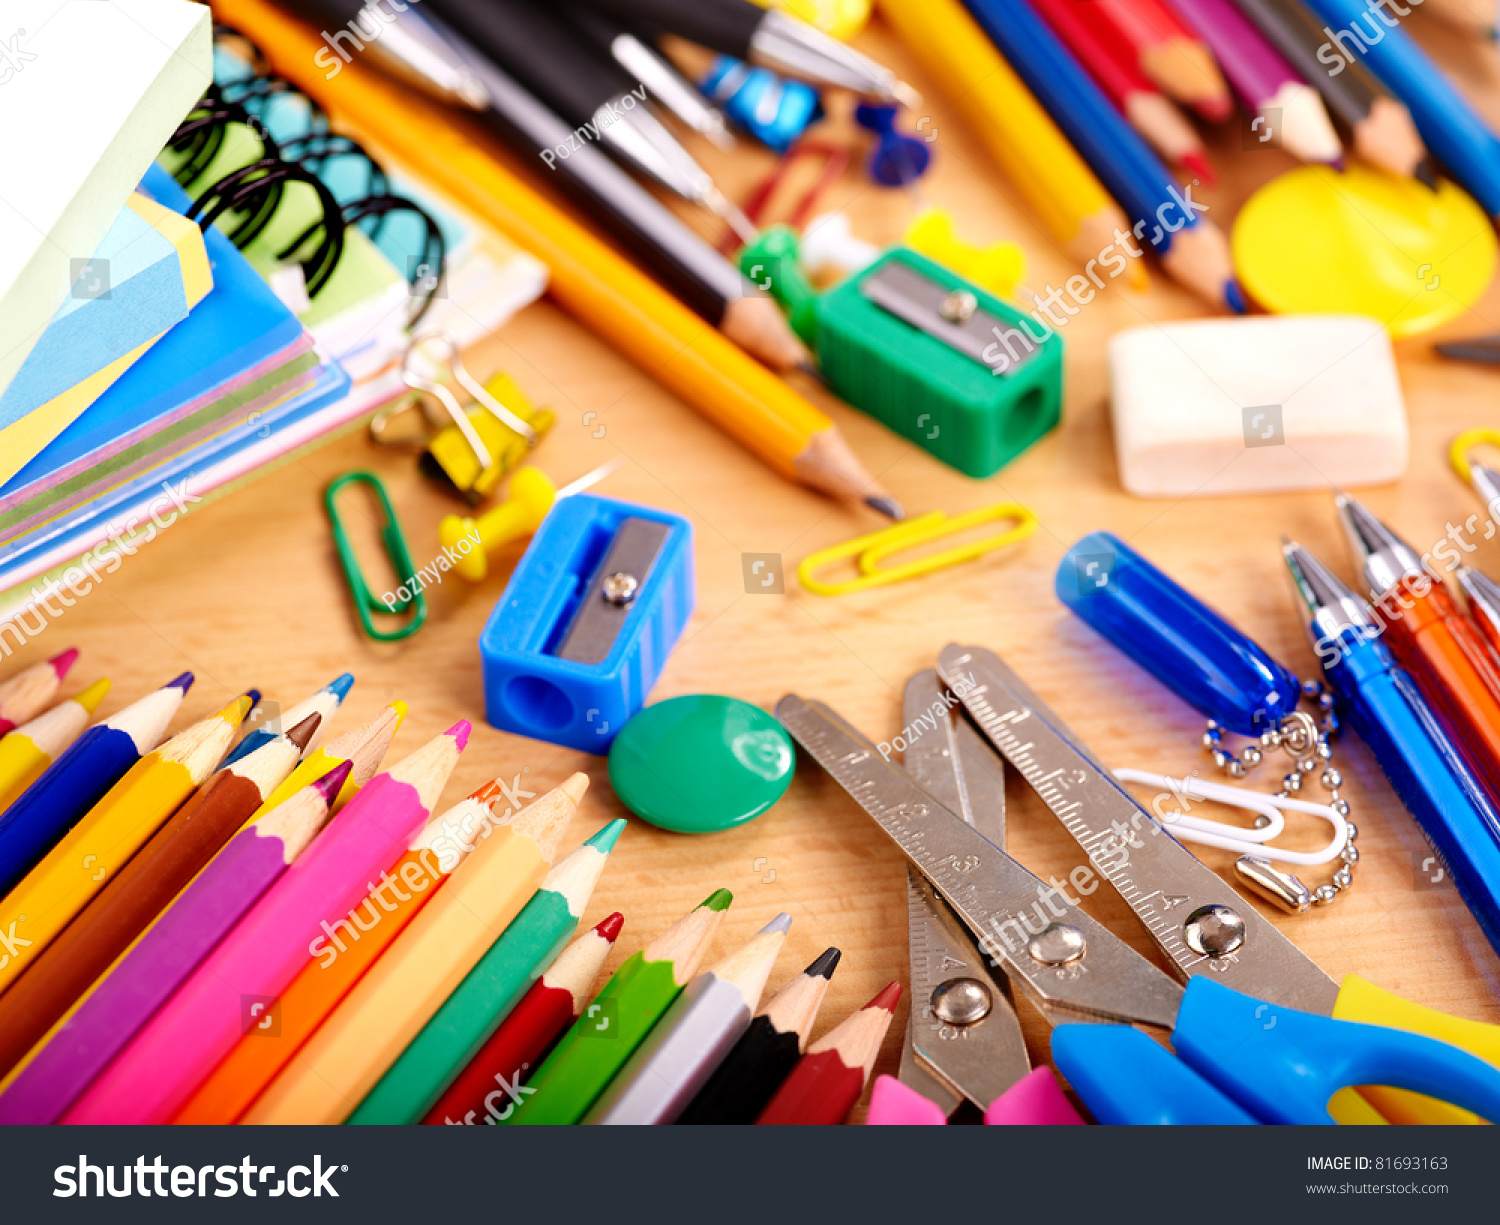 writing utensils synonym Staples gives consumers a variety of writing utensils to choose from,  utilize mechanical pencils for sharp, concise writing that flows smoothly as the device.